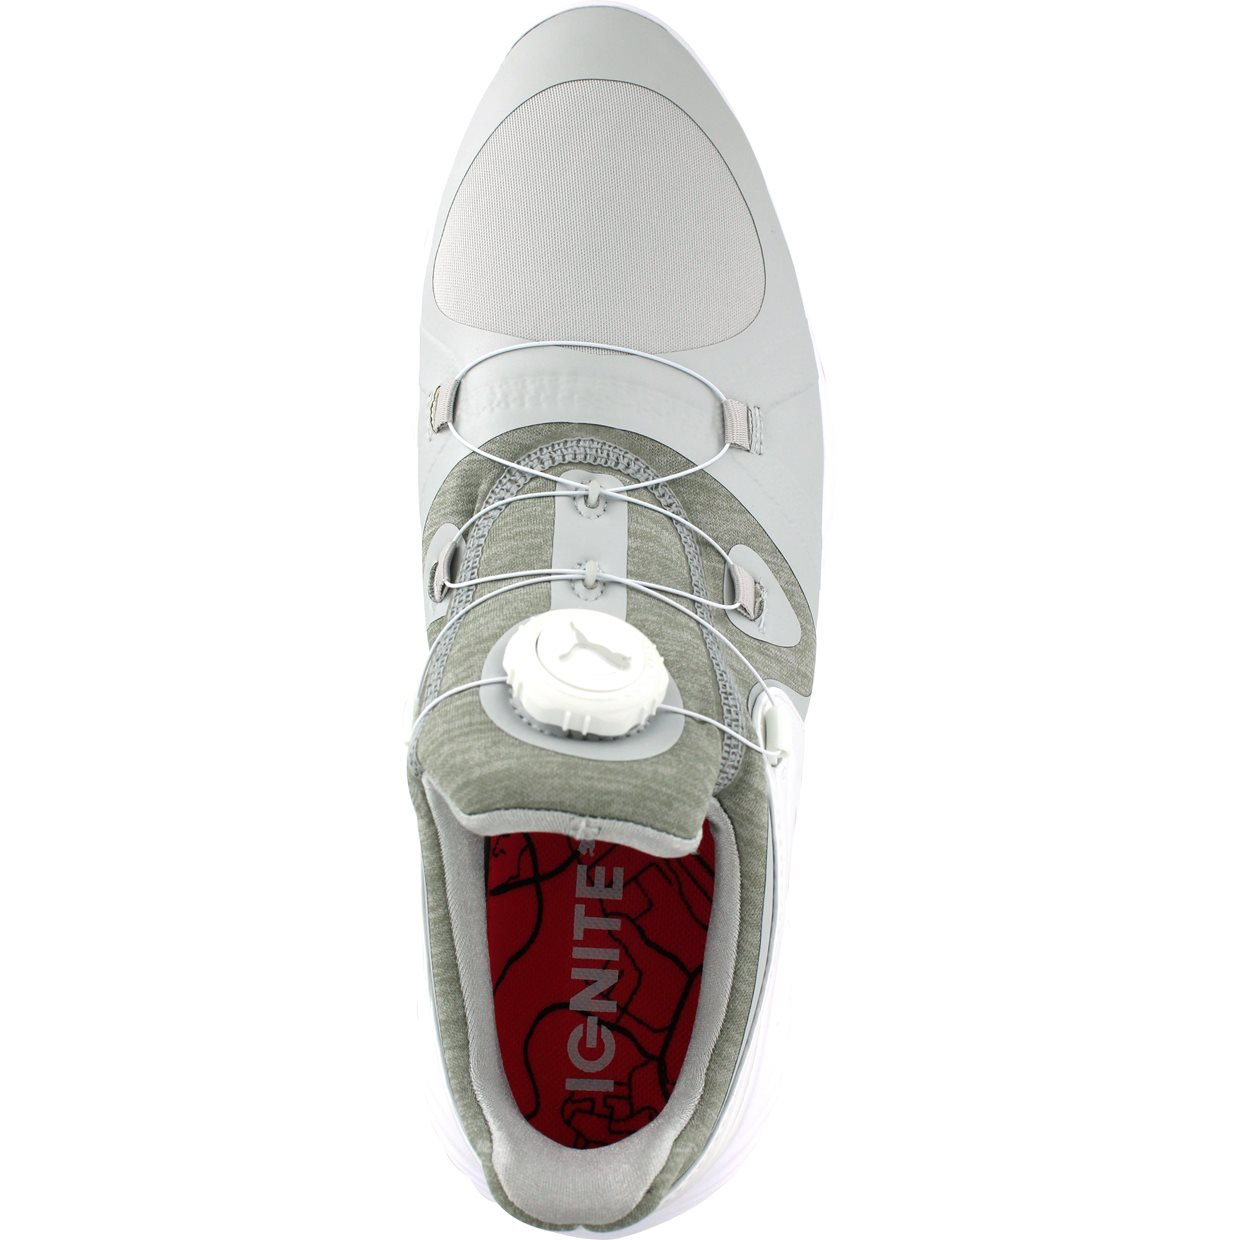 06ca4c8dce81c8 Puma Ignite Blaze Sport Disc Golf Shoe. Drag 360 Left or Right to View.  Alternate Product Image View 1 Alternate Product Image View 2 Alternate  Product ...